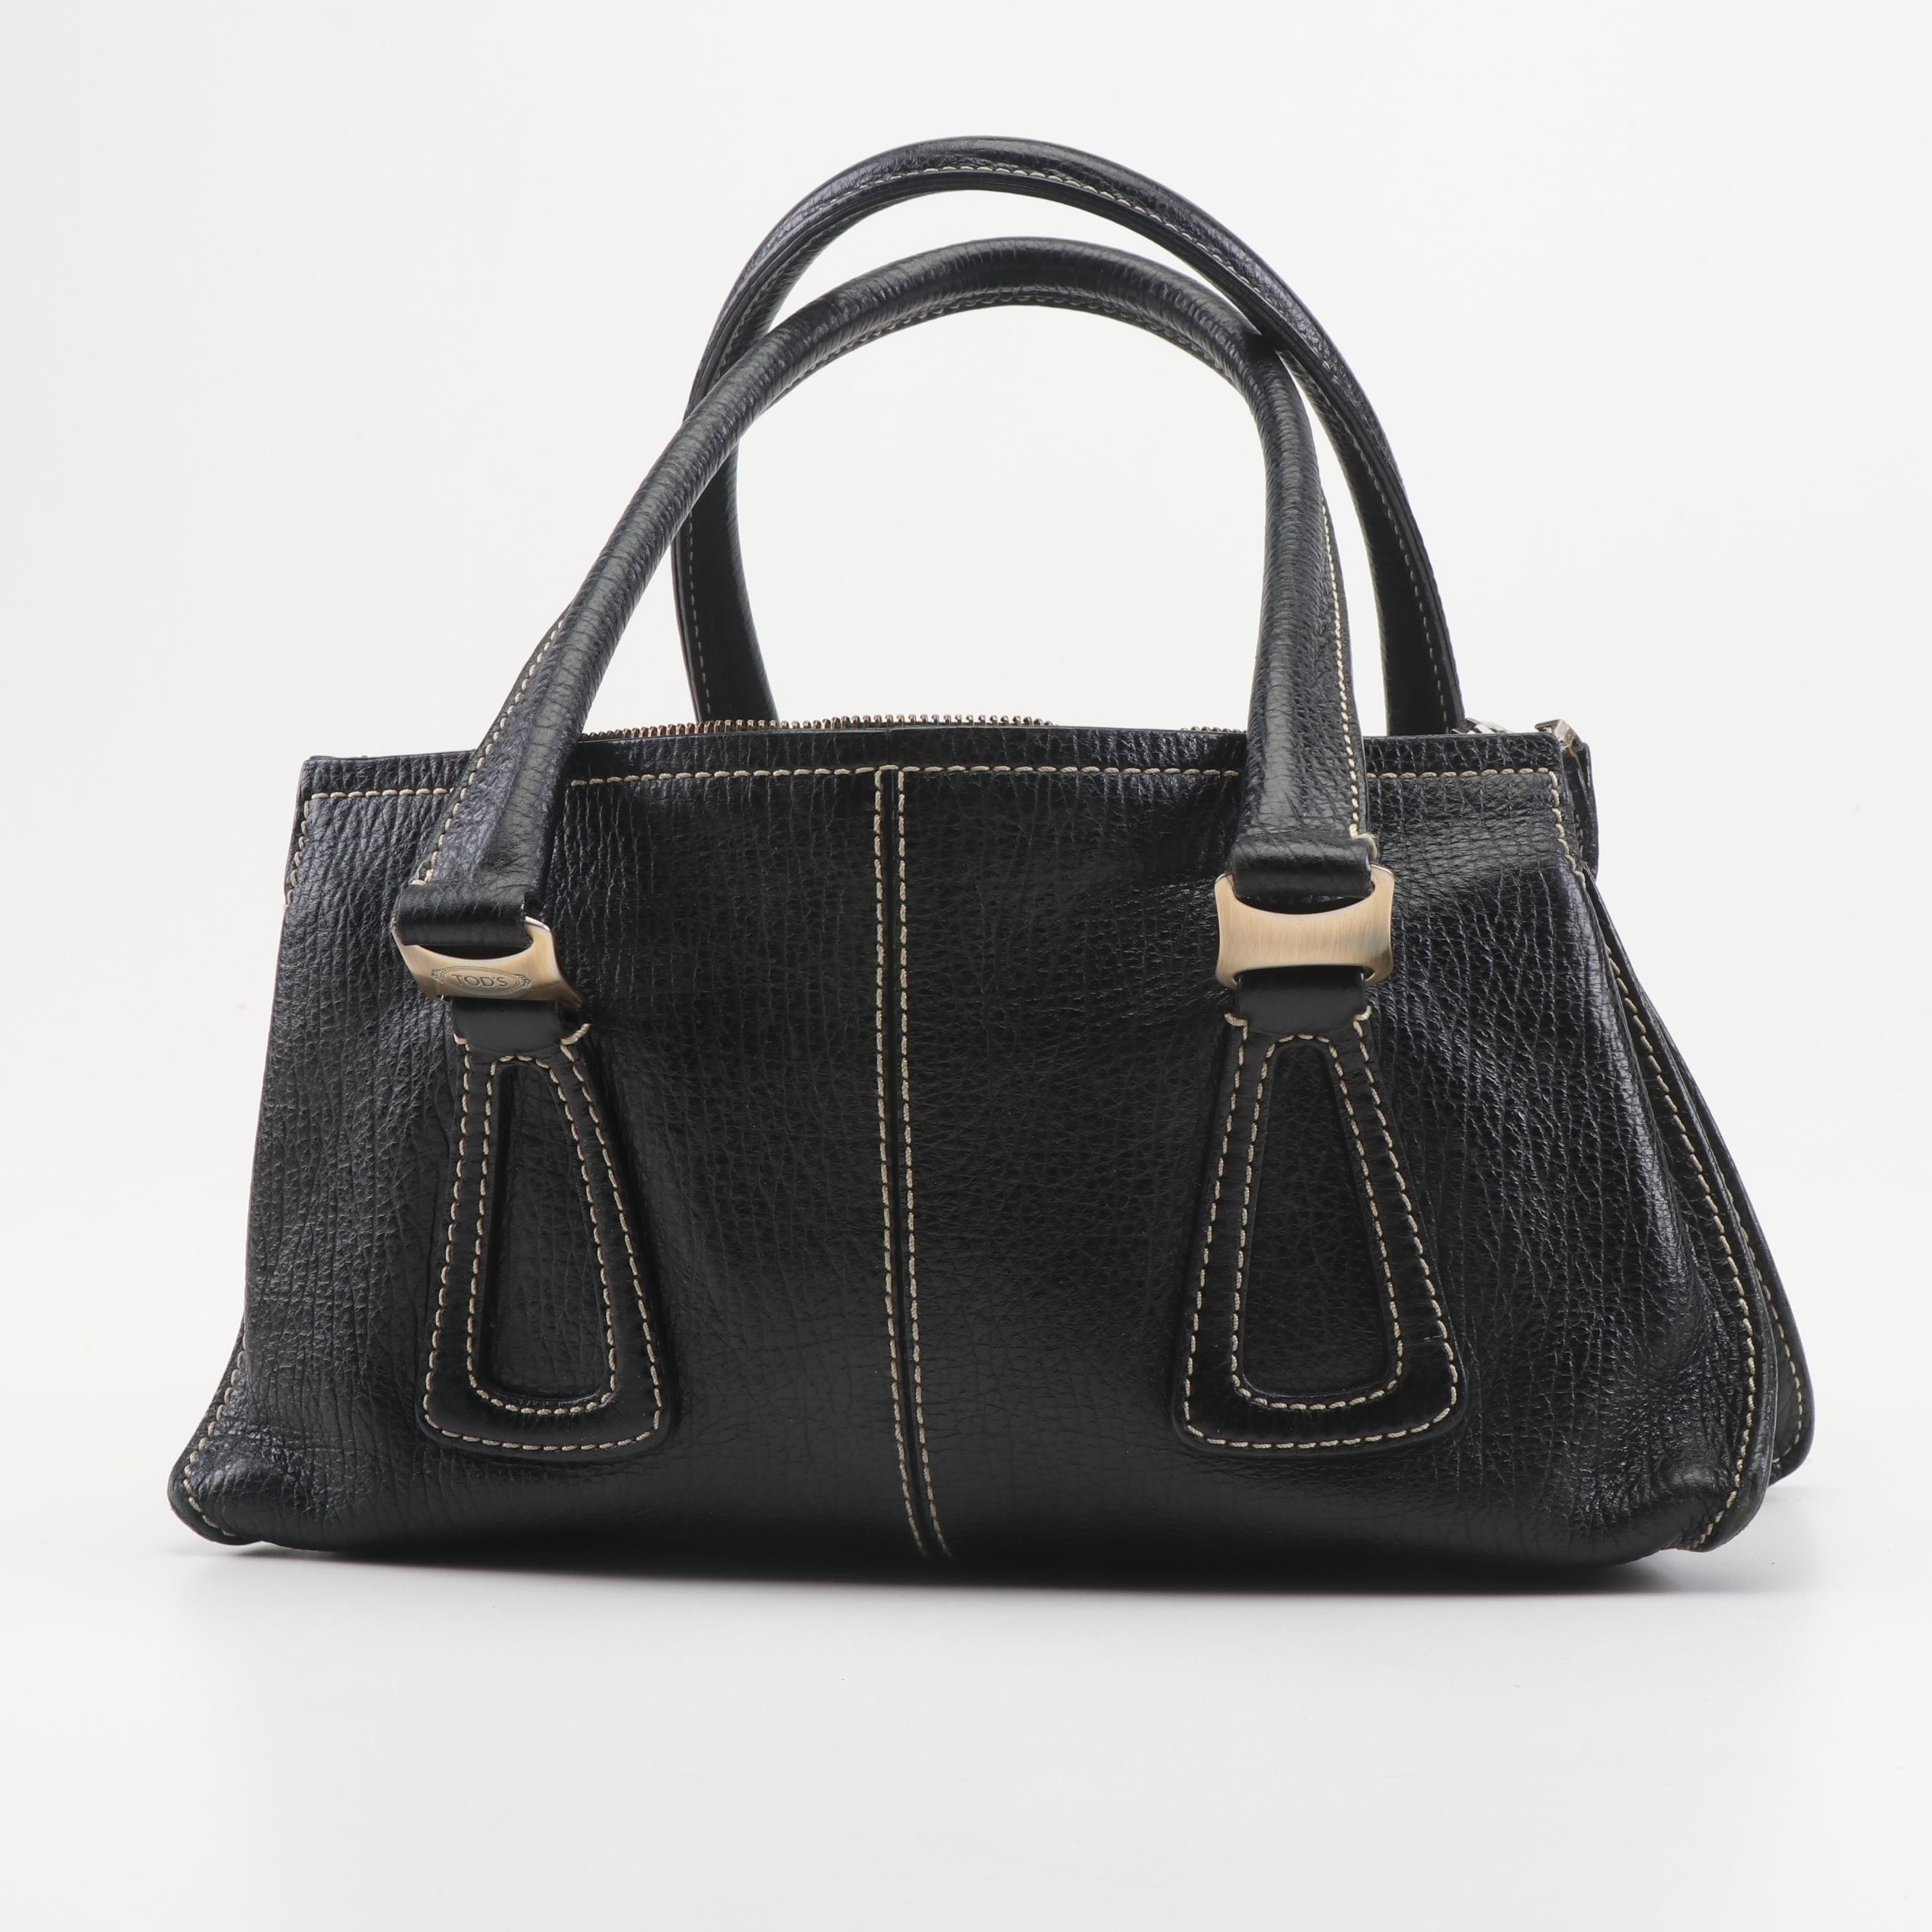 Tod's Black Grained Leather Satchel, Made in Italy